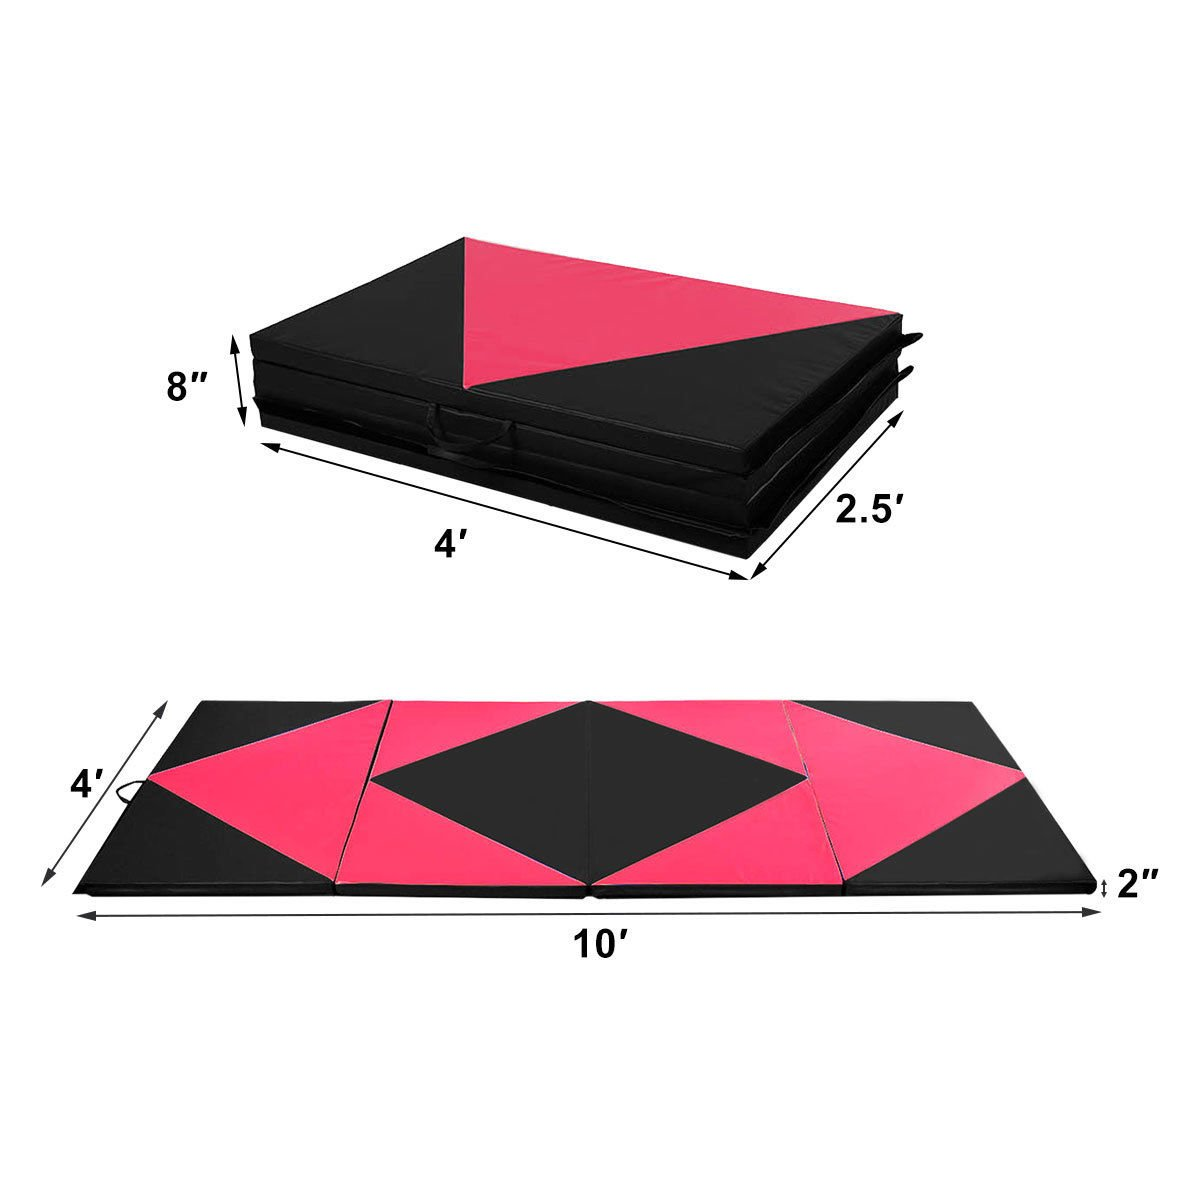 COSTWAY 4'X10'X2 Gymnastics Mat Folding Panel Thick Gym Fitness Exercise Pink/Black New by COSTWAY (Image #8)